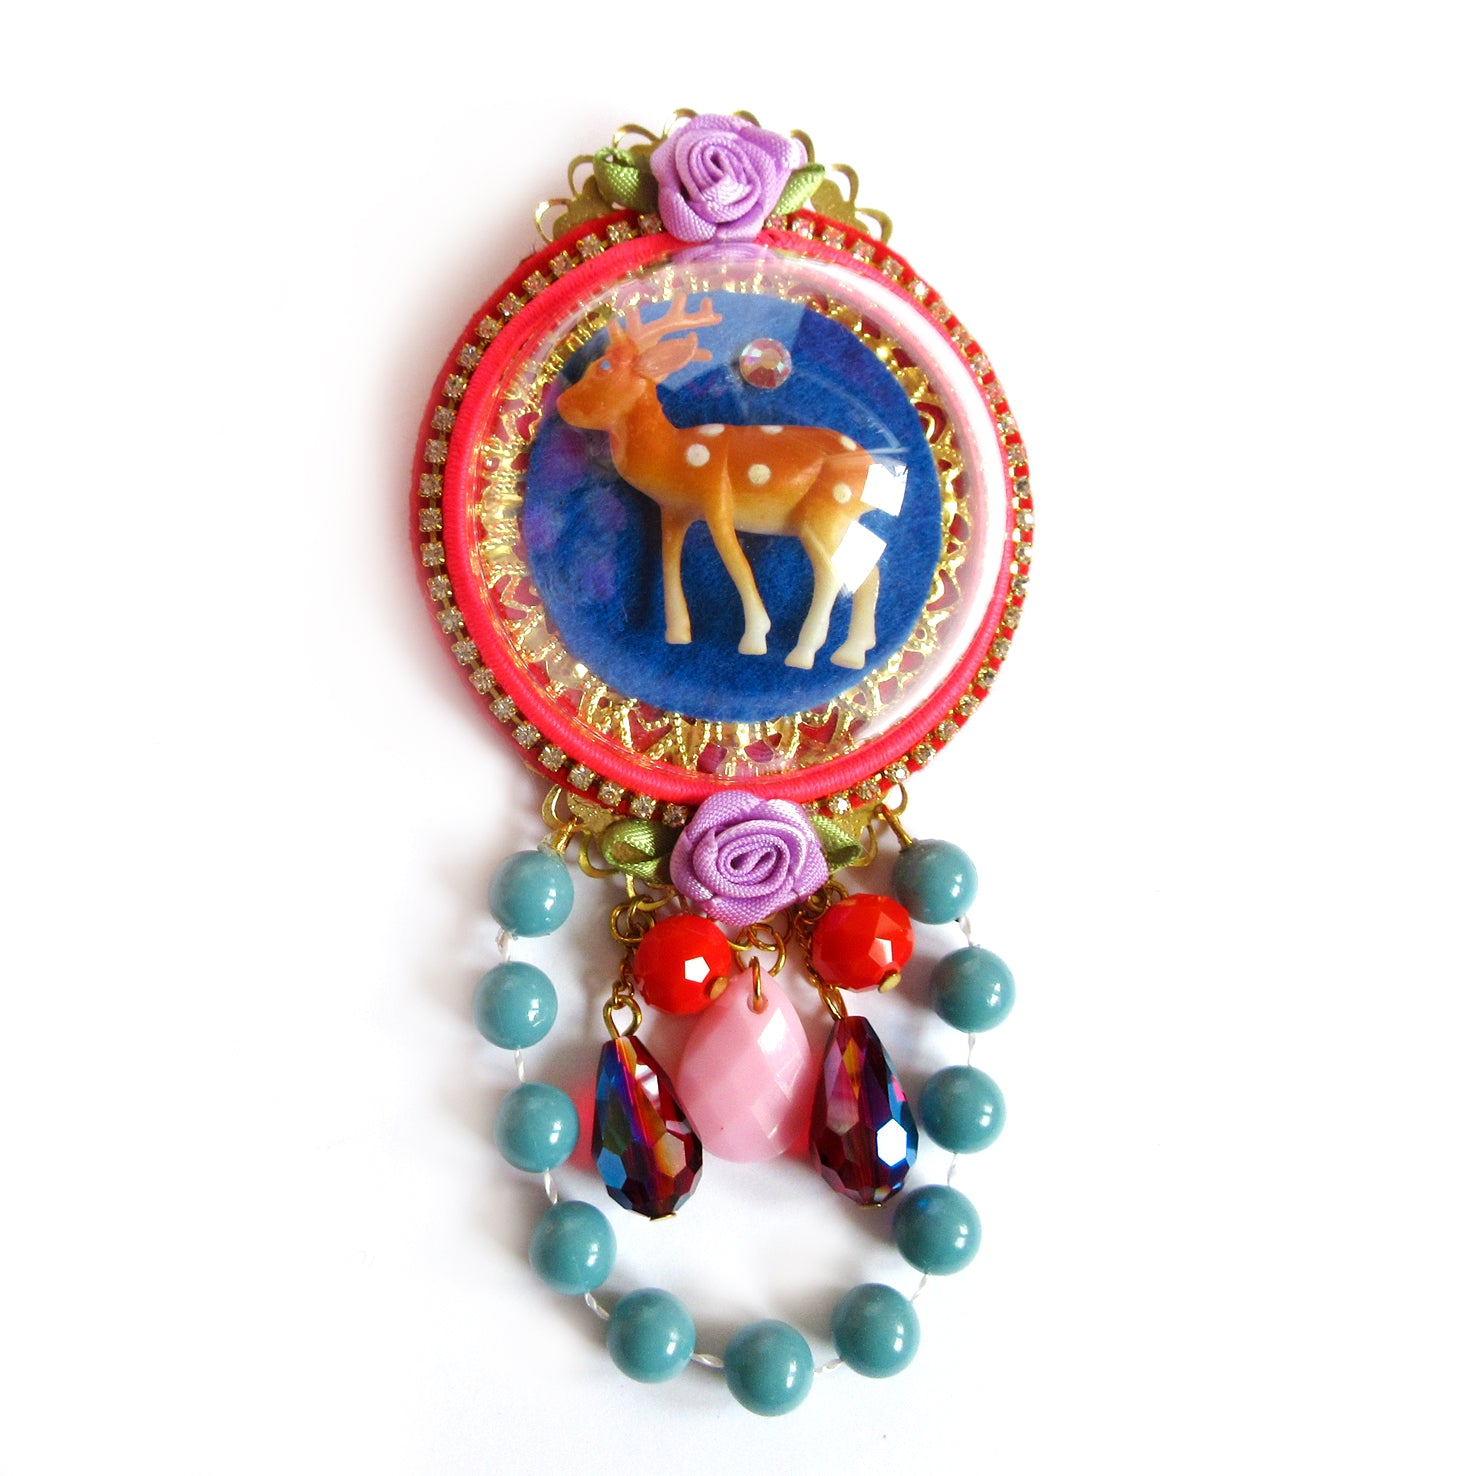 mouchkine jewelry handmade chic bambi brooch, a haute couture jewel made in france